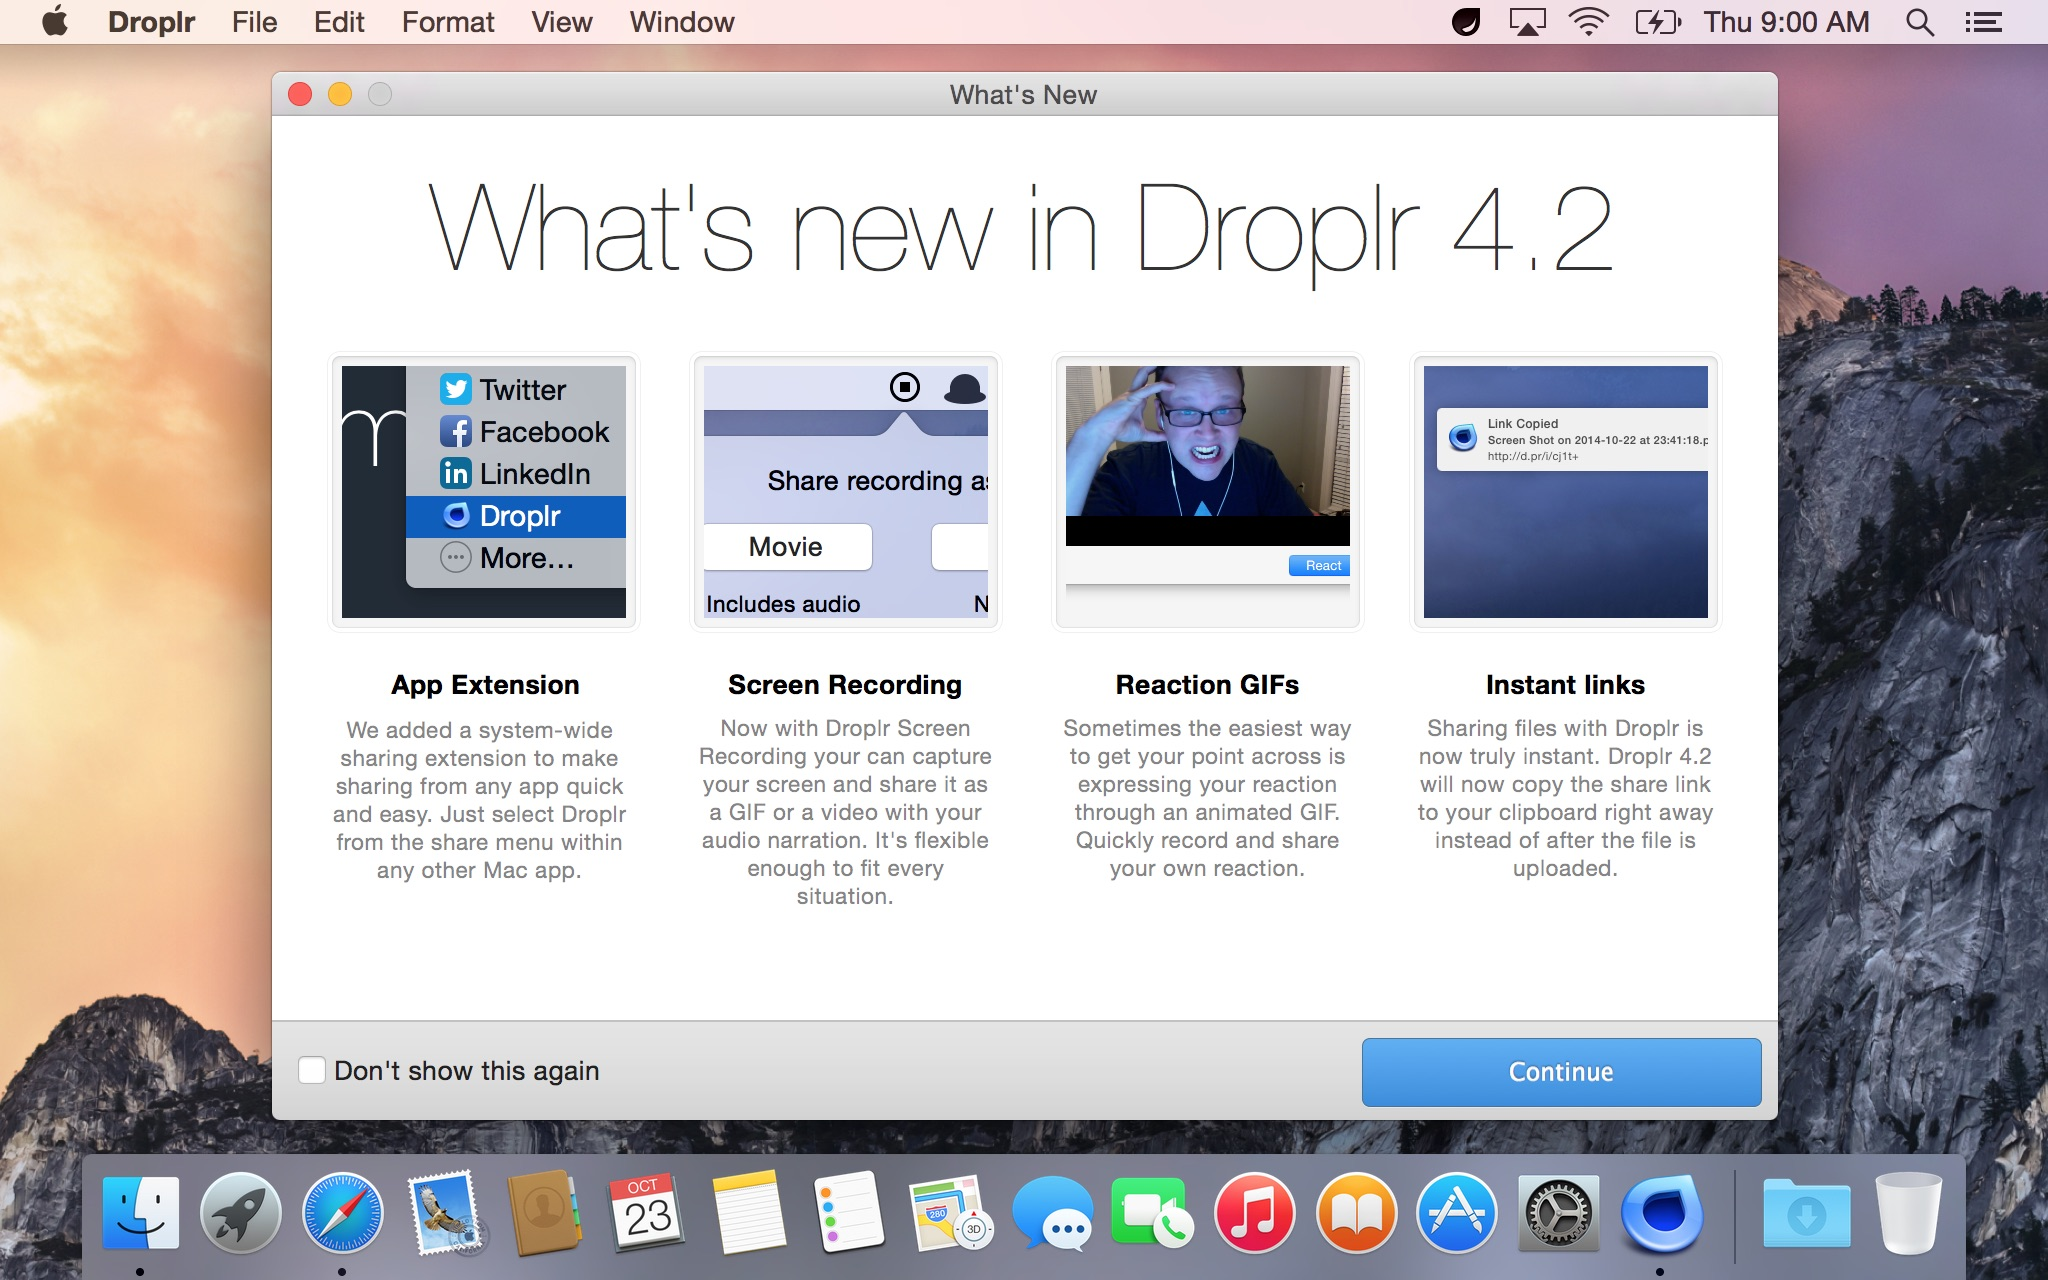 Droplr for Mac updated with new features for OS X Yosemite and other enhancements